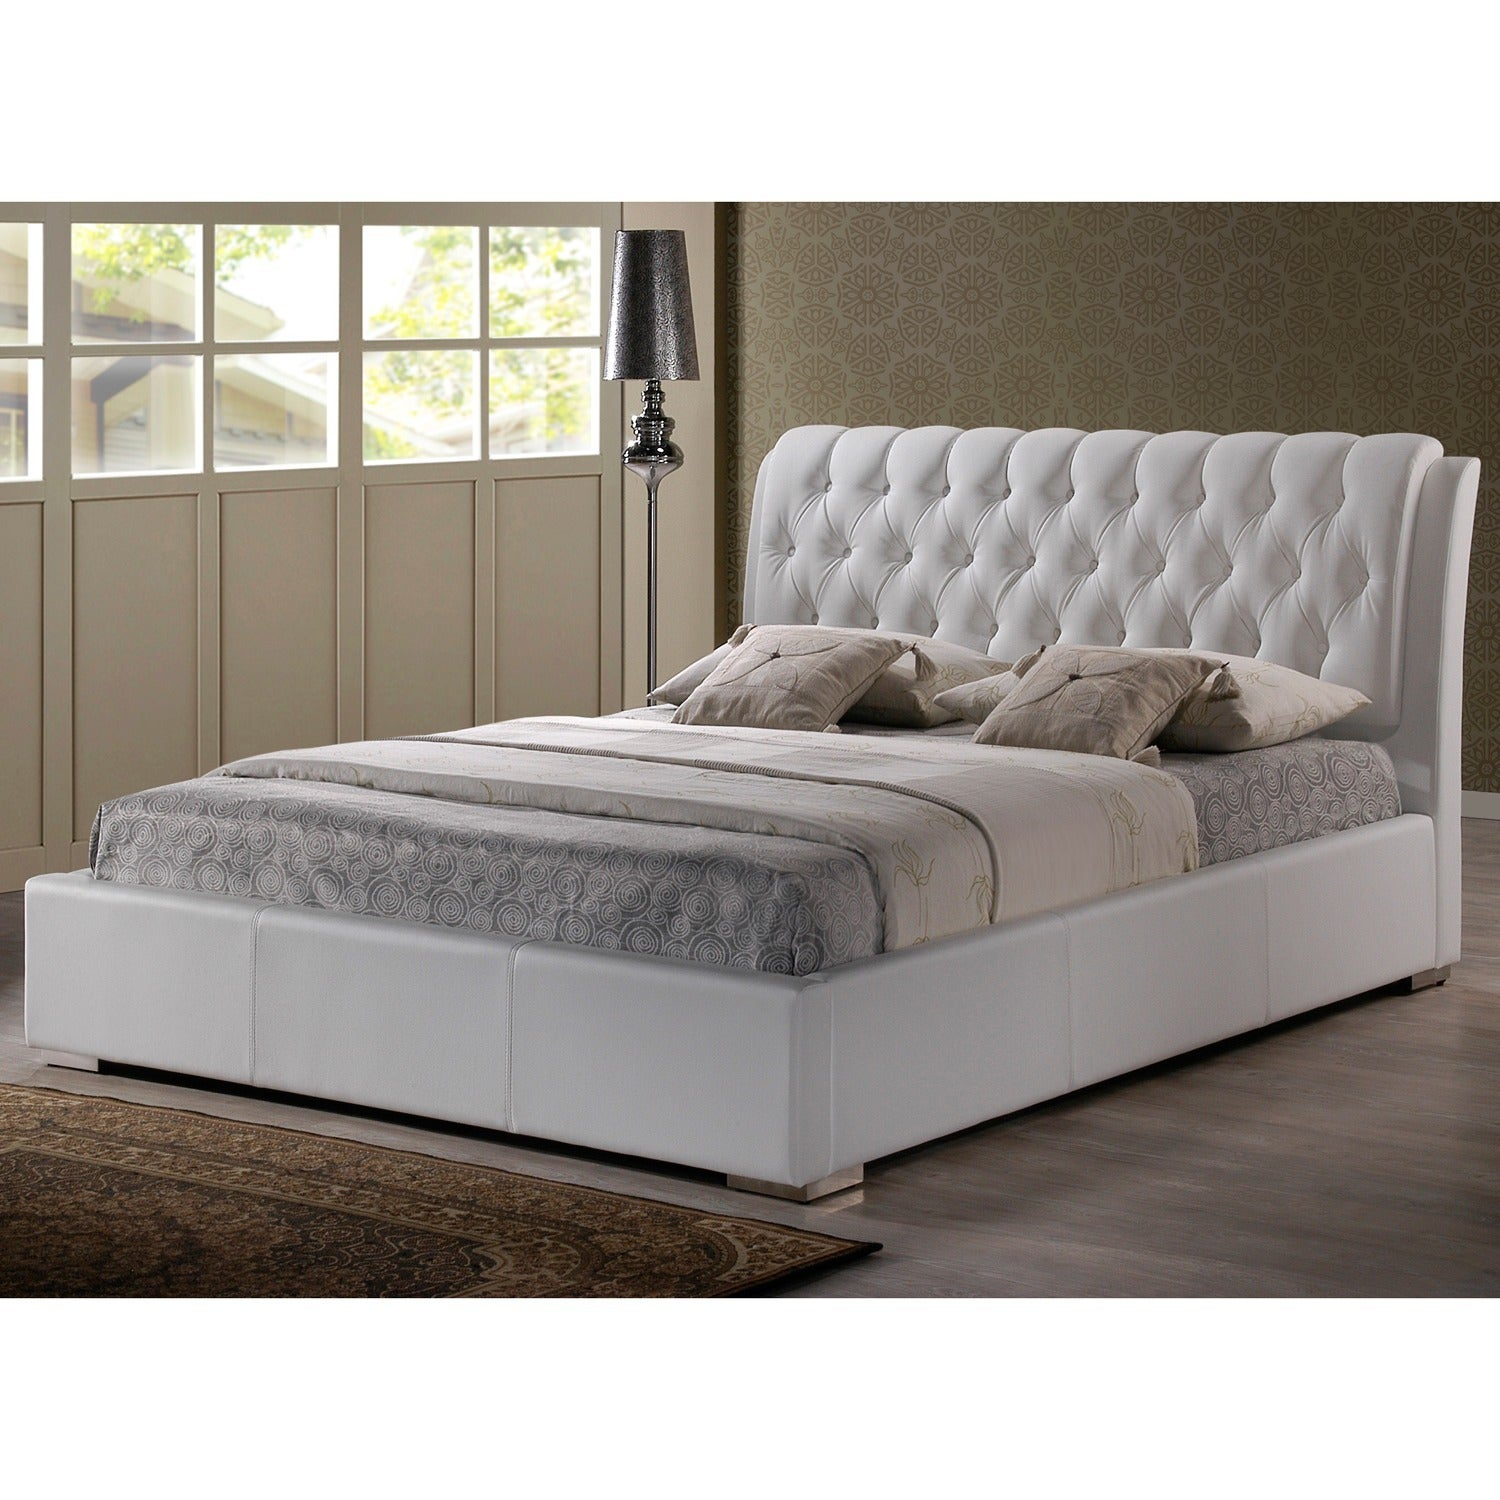 bianca modern tufted white king bed by baxton studio  free shipping today overstockcom  . bianca modern tufted white king bed by baxton studio  free